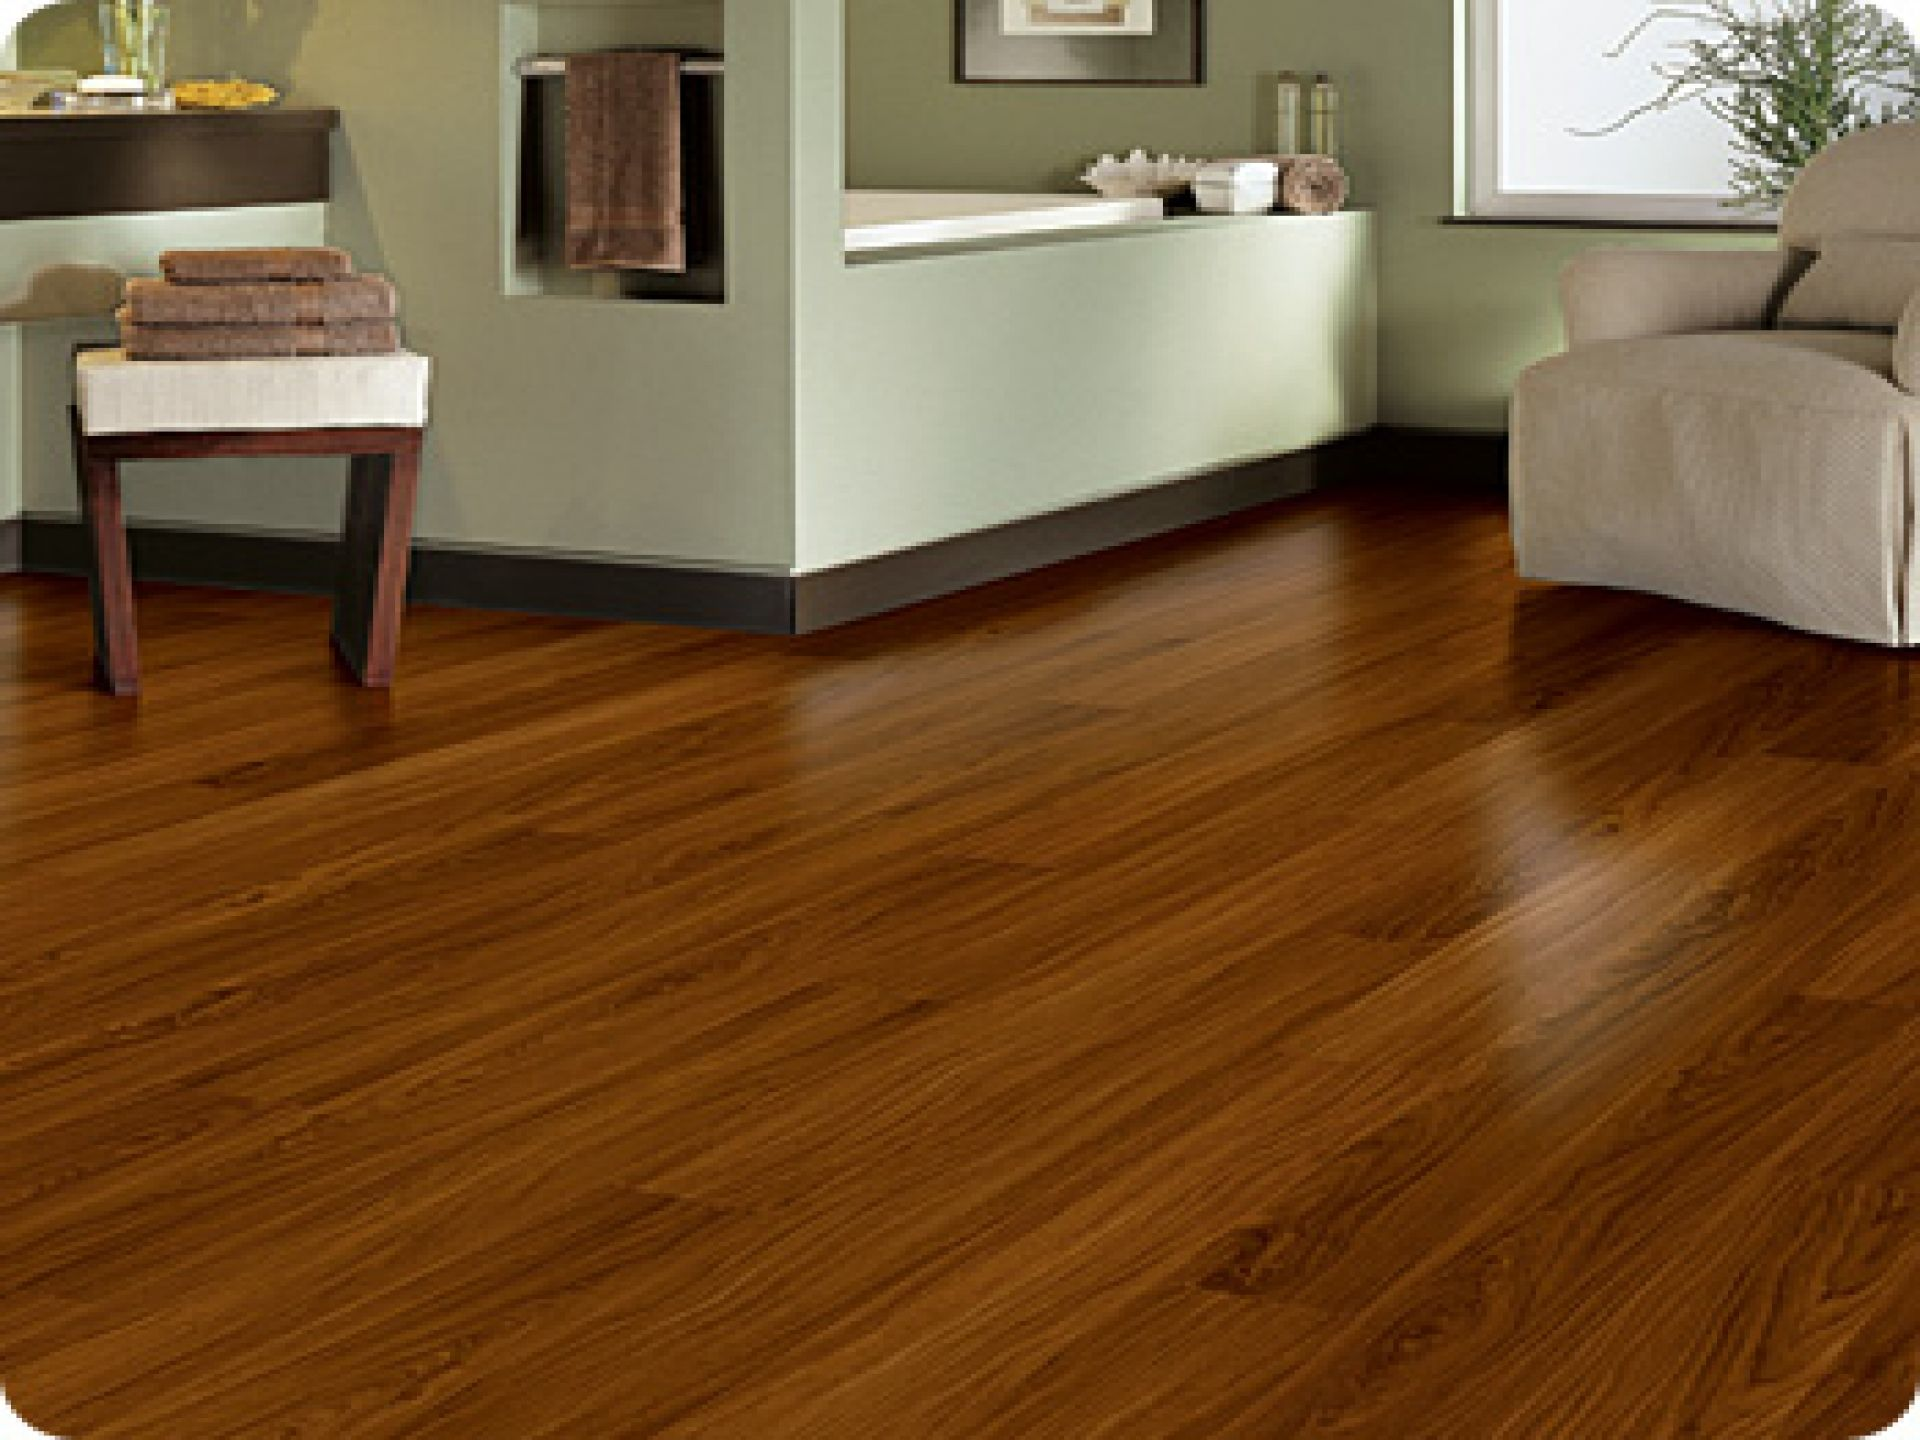 Interesting armstrong exquisite vinyl plank flooring butterscotch interesting armstrong exquisite vinyl plank flooring butterscotch oak and vinyl plank flooring for bathroom dailygadgetfo Gallery